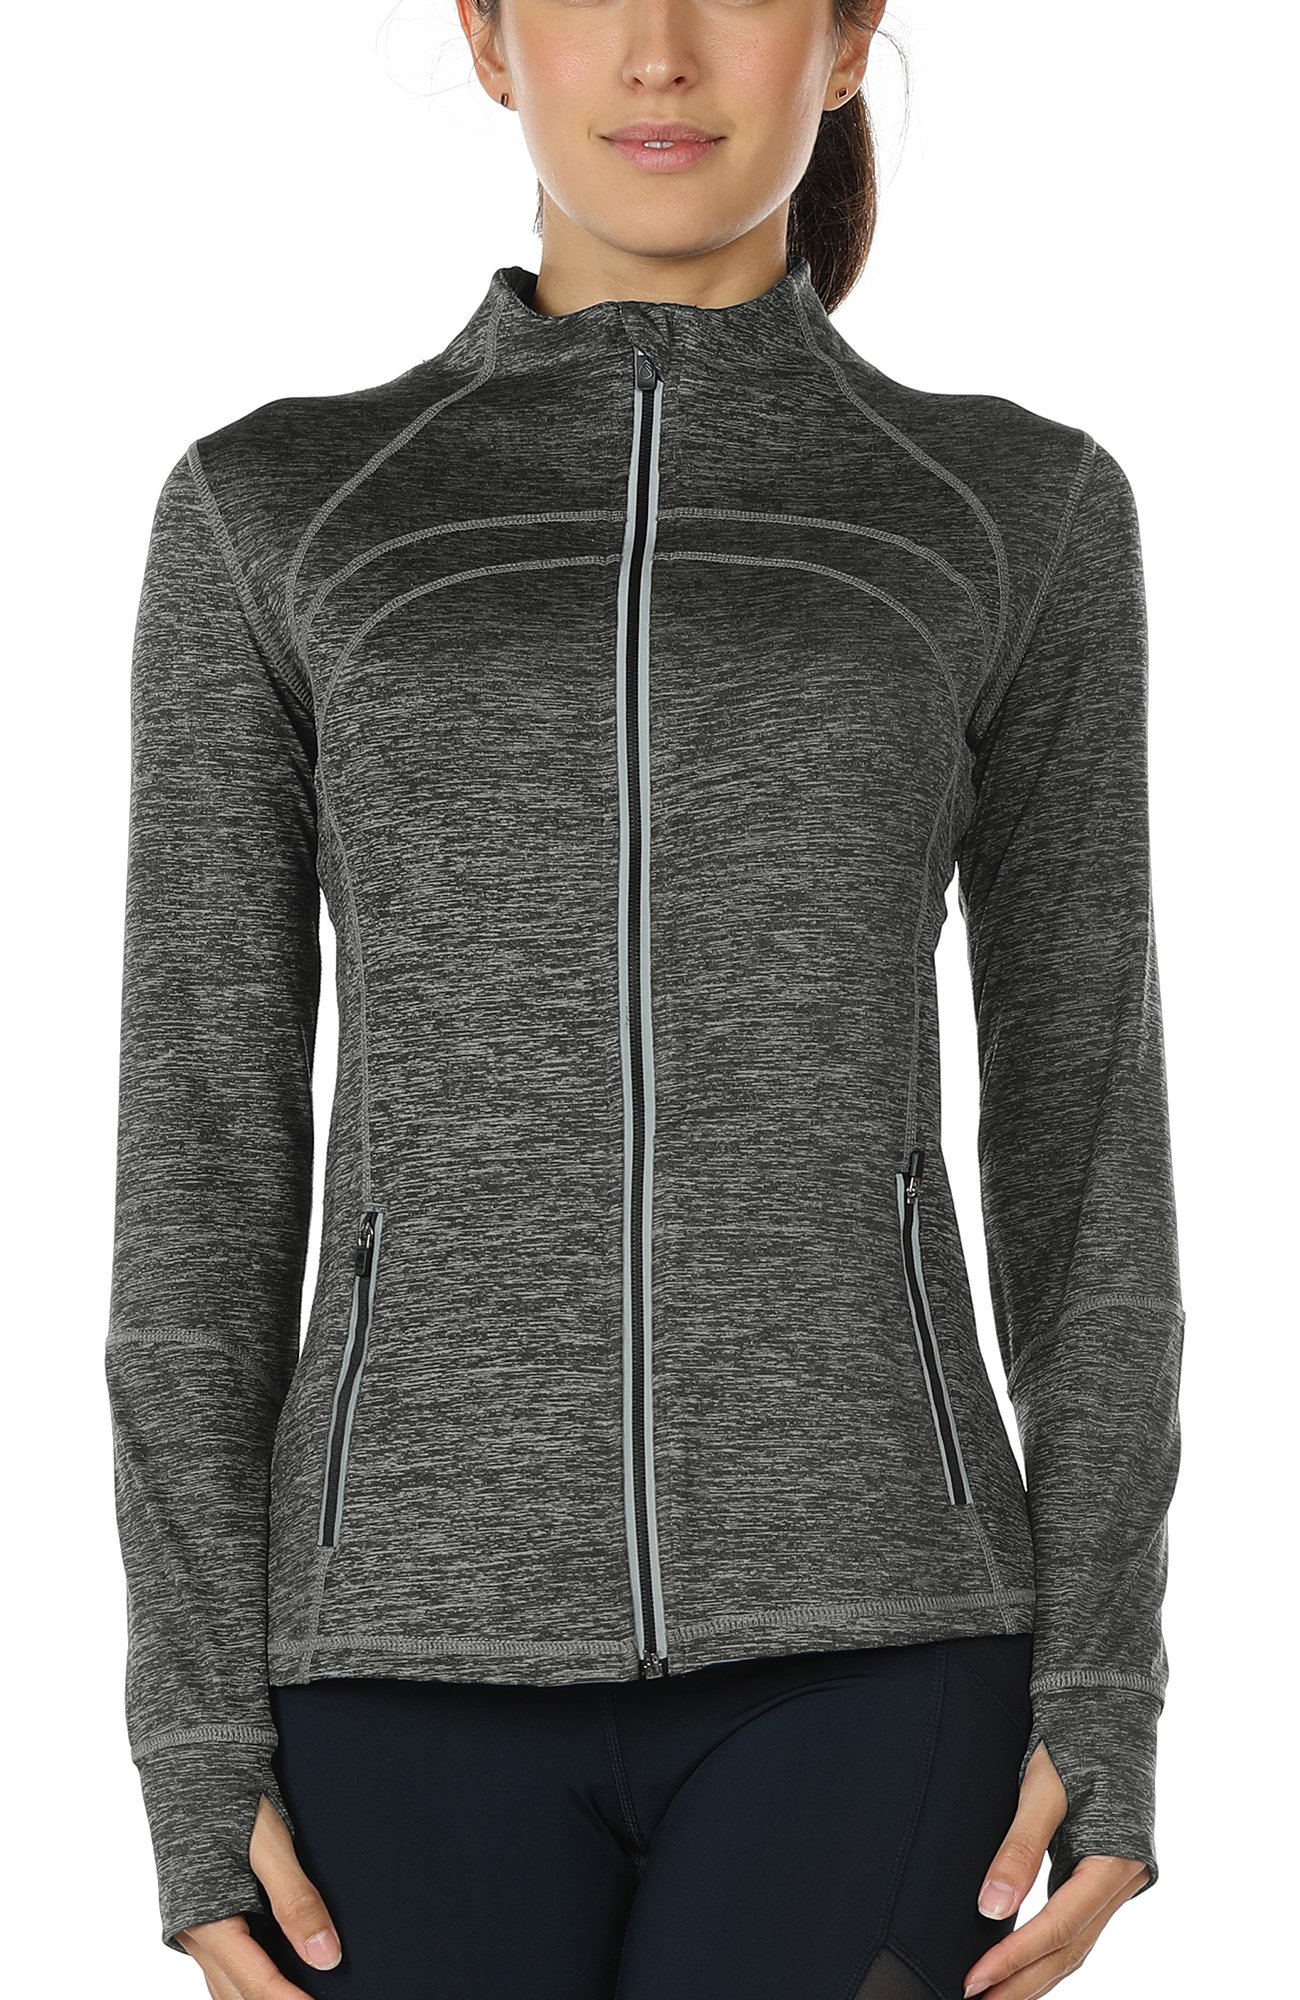 icyzone Women's Running Shirt Full Zip Workout Track Jacket with Thumb Holes (L, Charcoal)